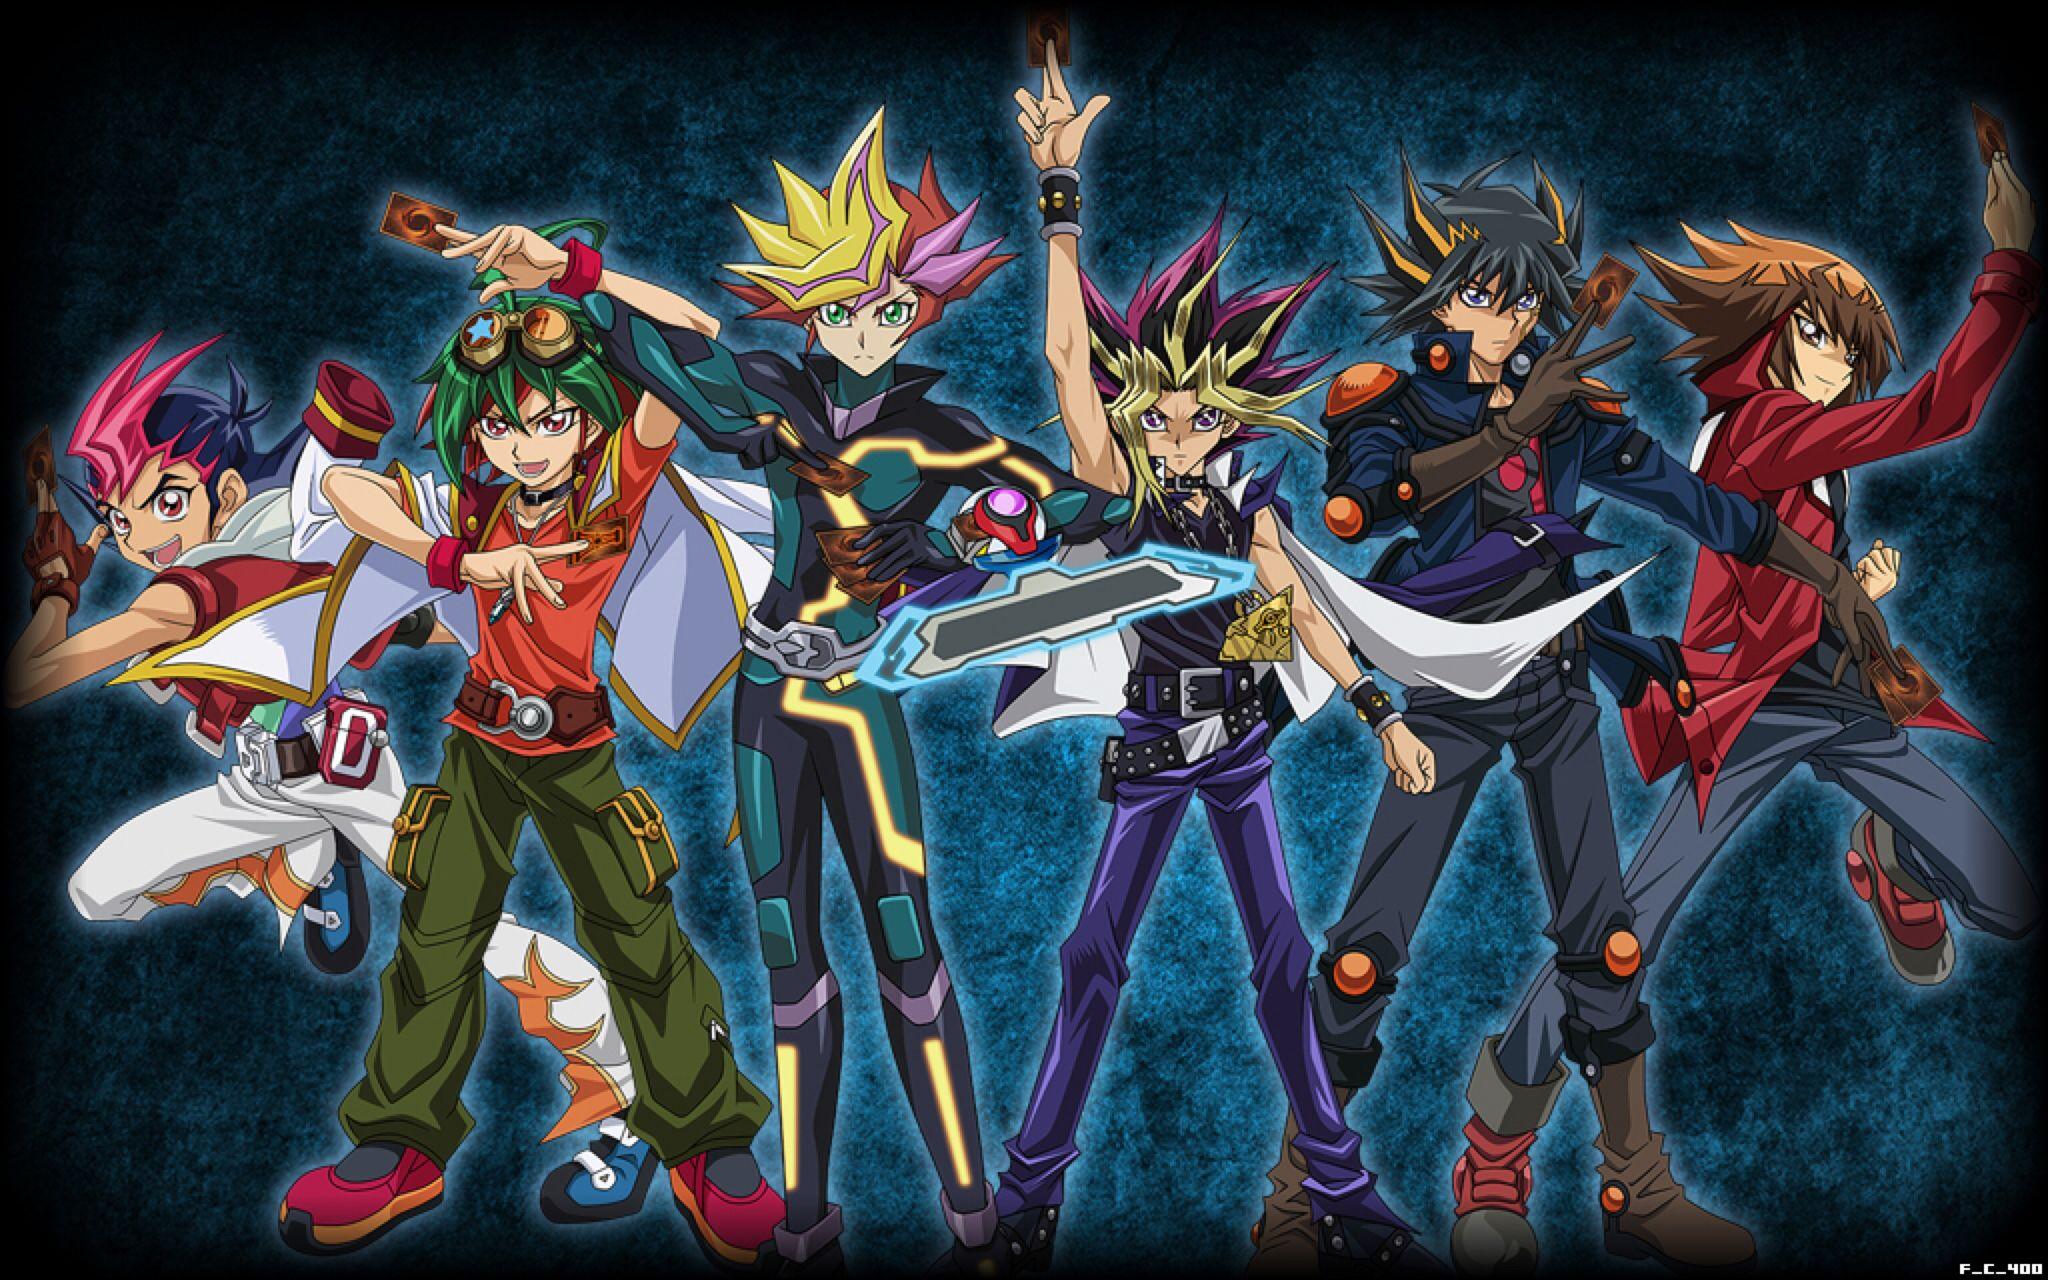 All Yu Gi Oh Protagonists Wallpaper Background By Fackuula12 On